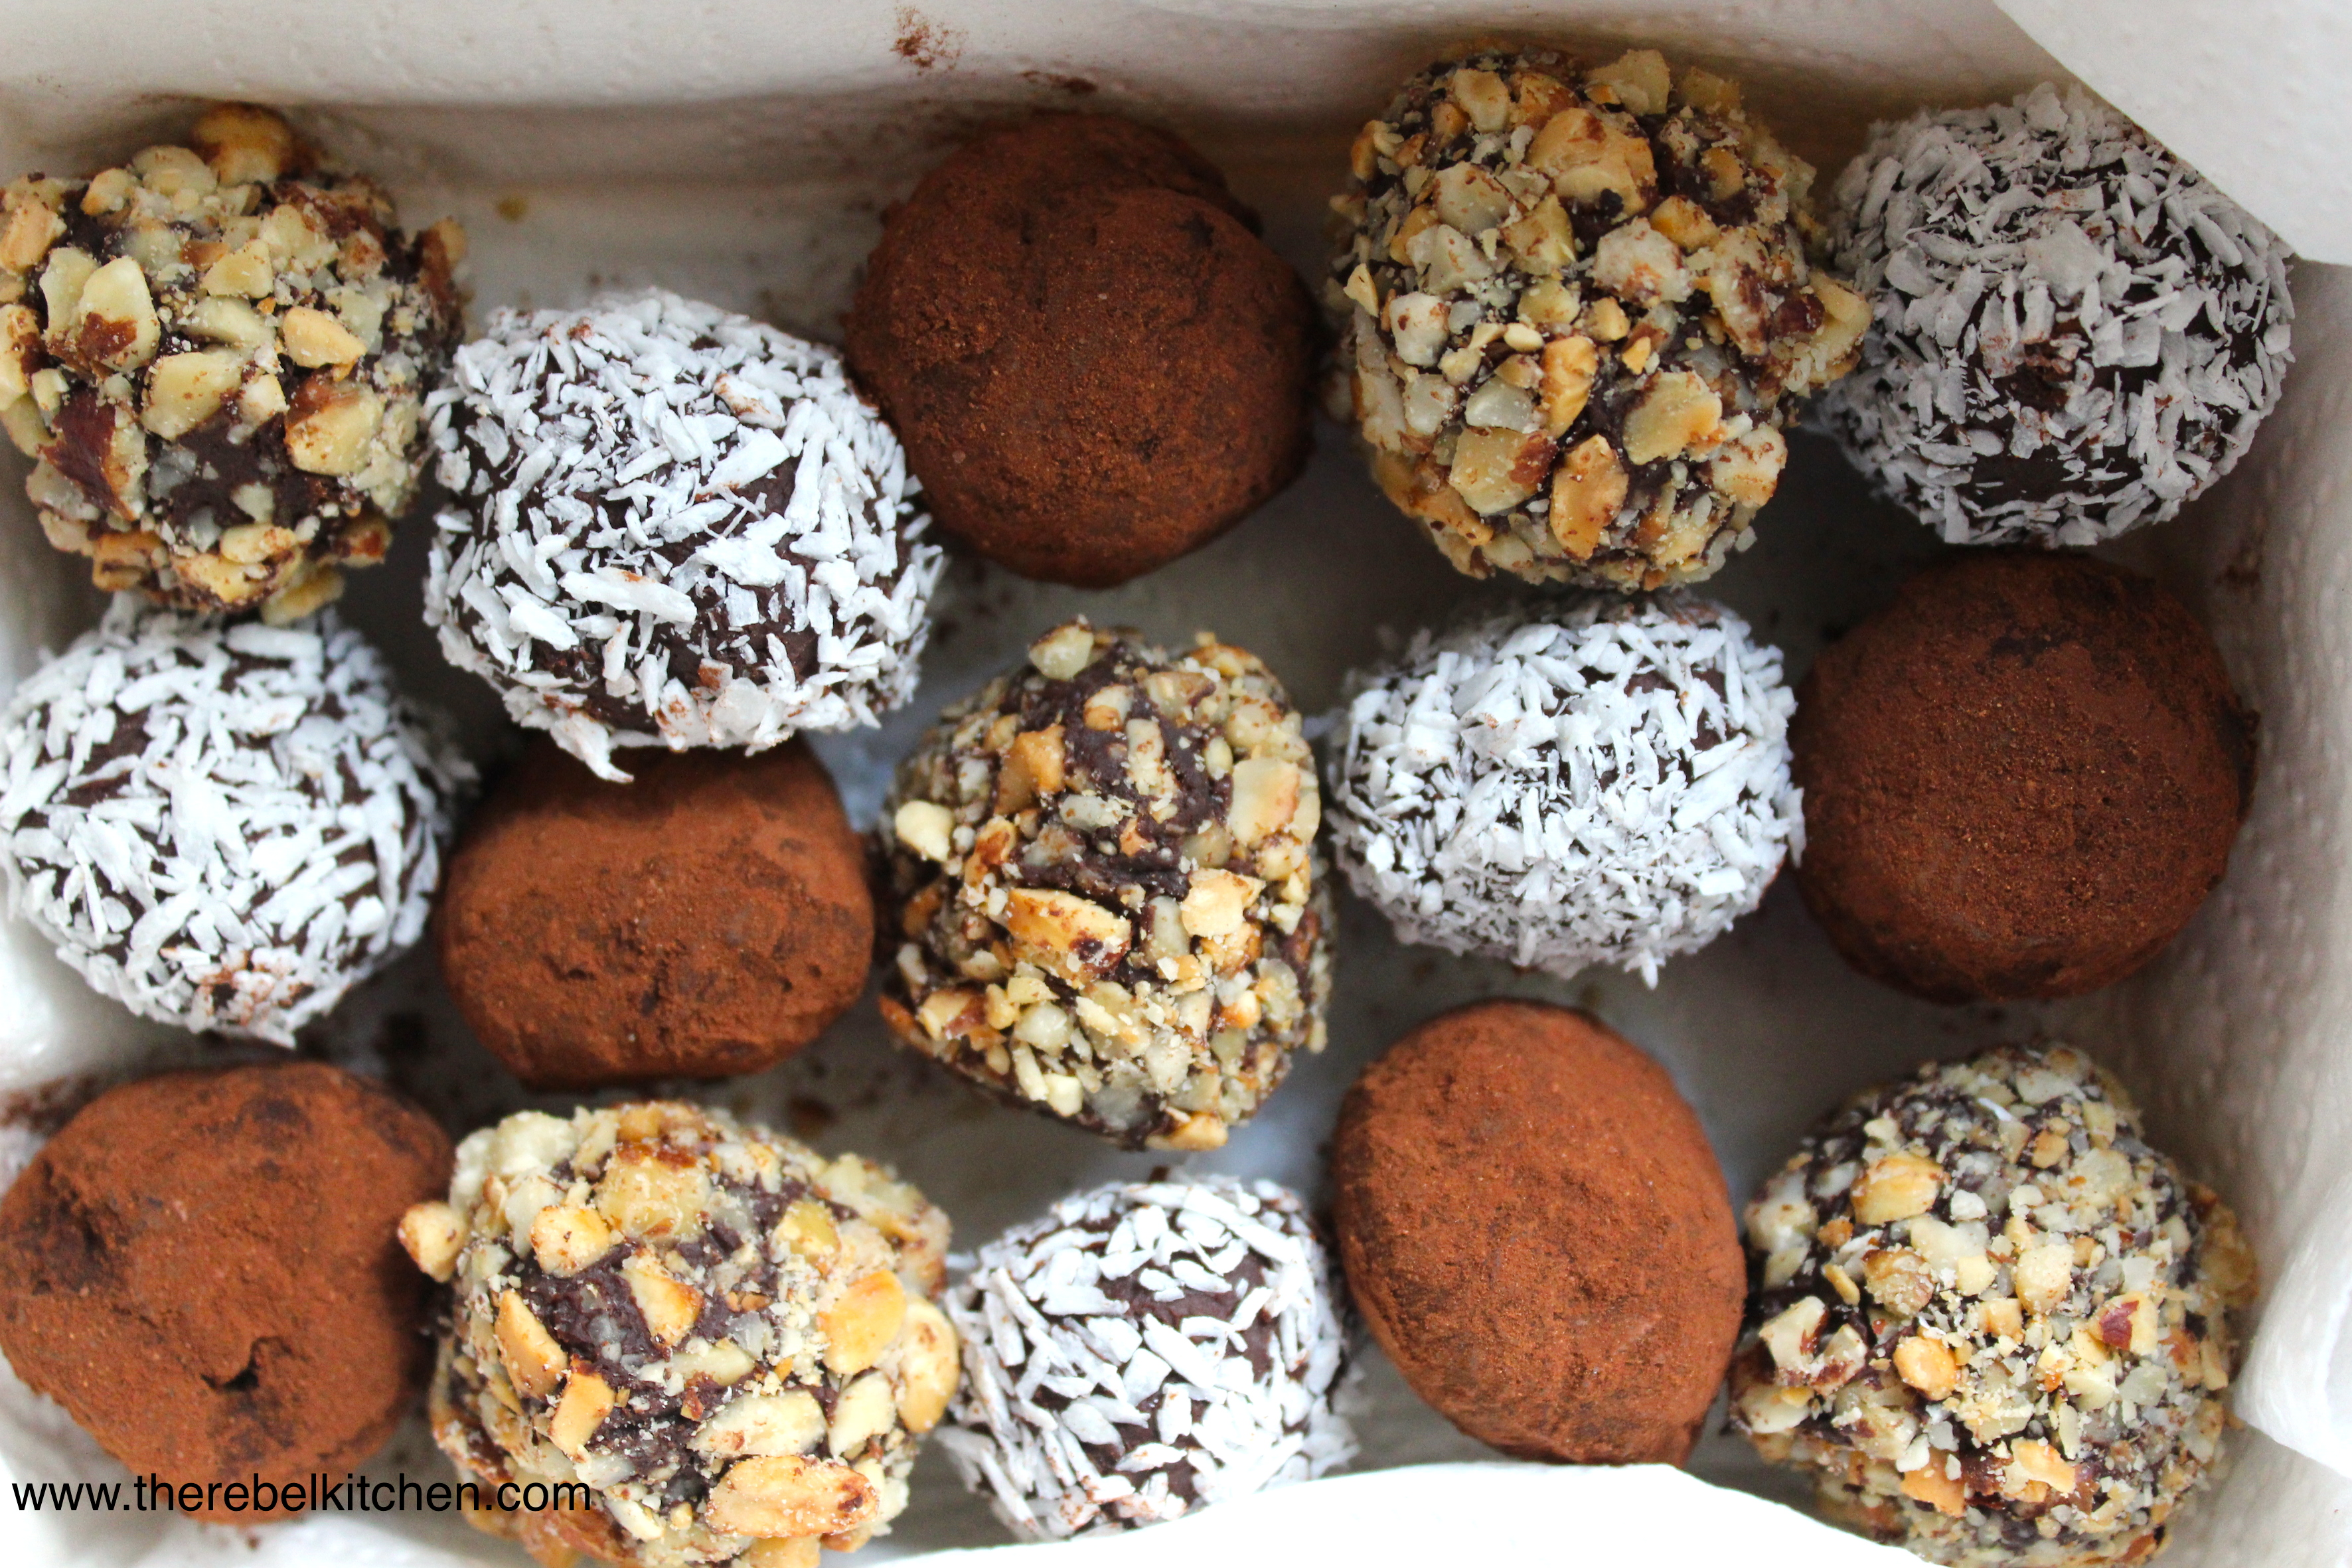 Homemade Chocolate Truffles homemade truffles the rebel kitchen